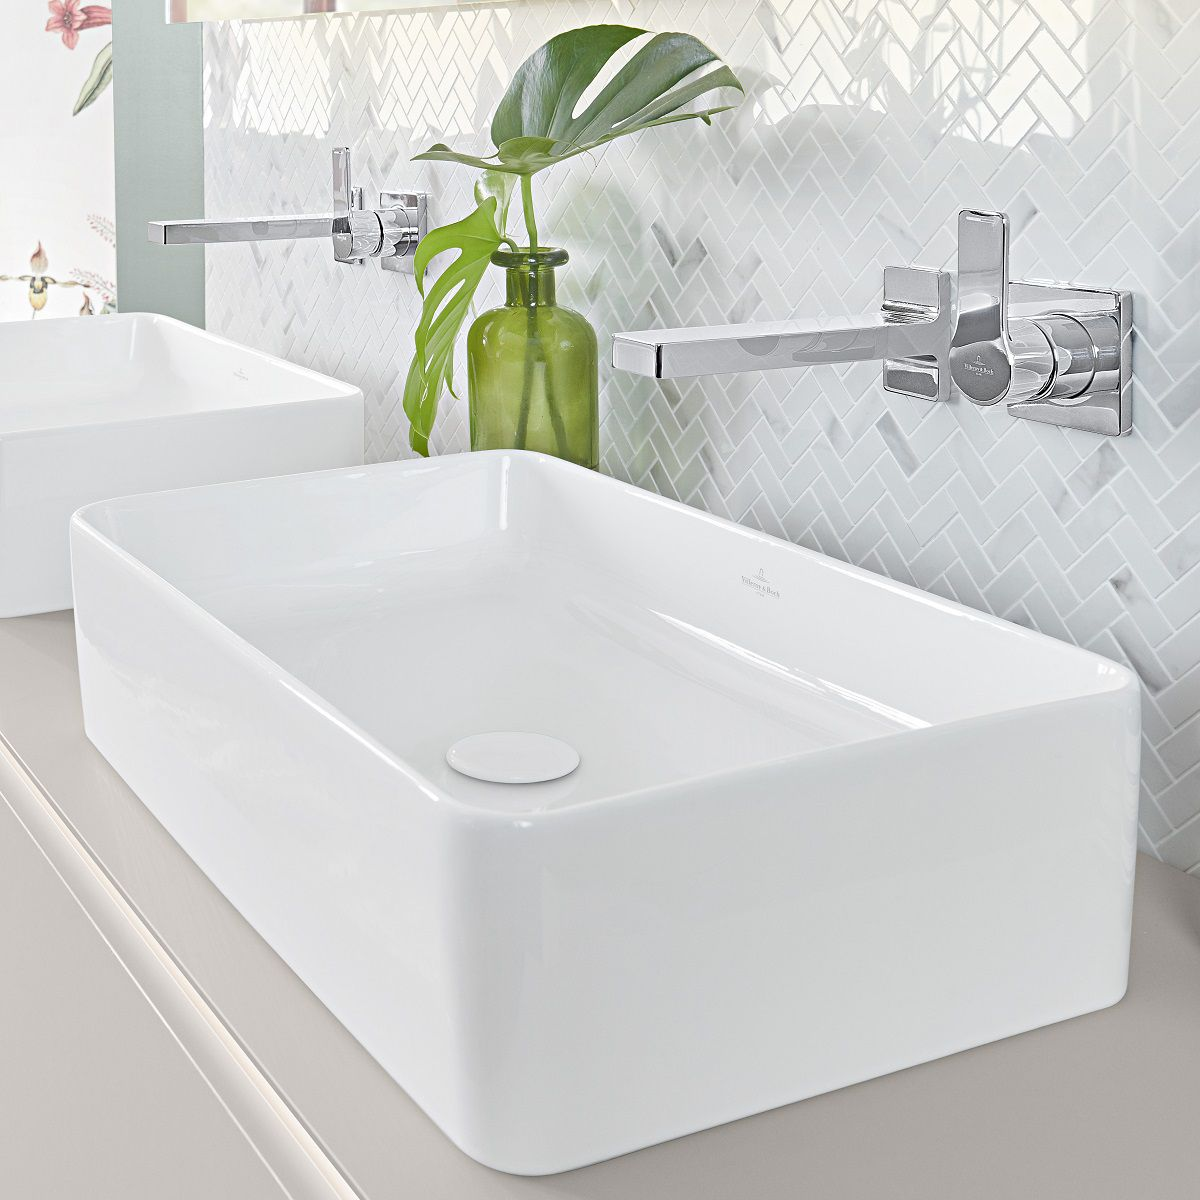 Villeroy & Boch Collaro Rectangular Countertop Basin